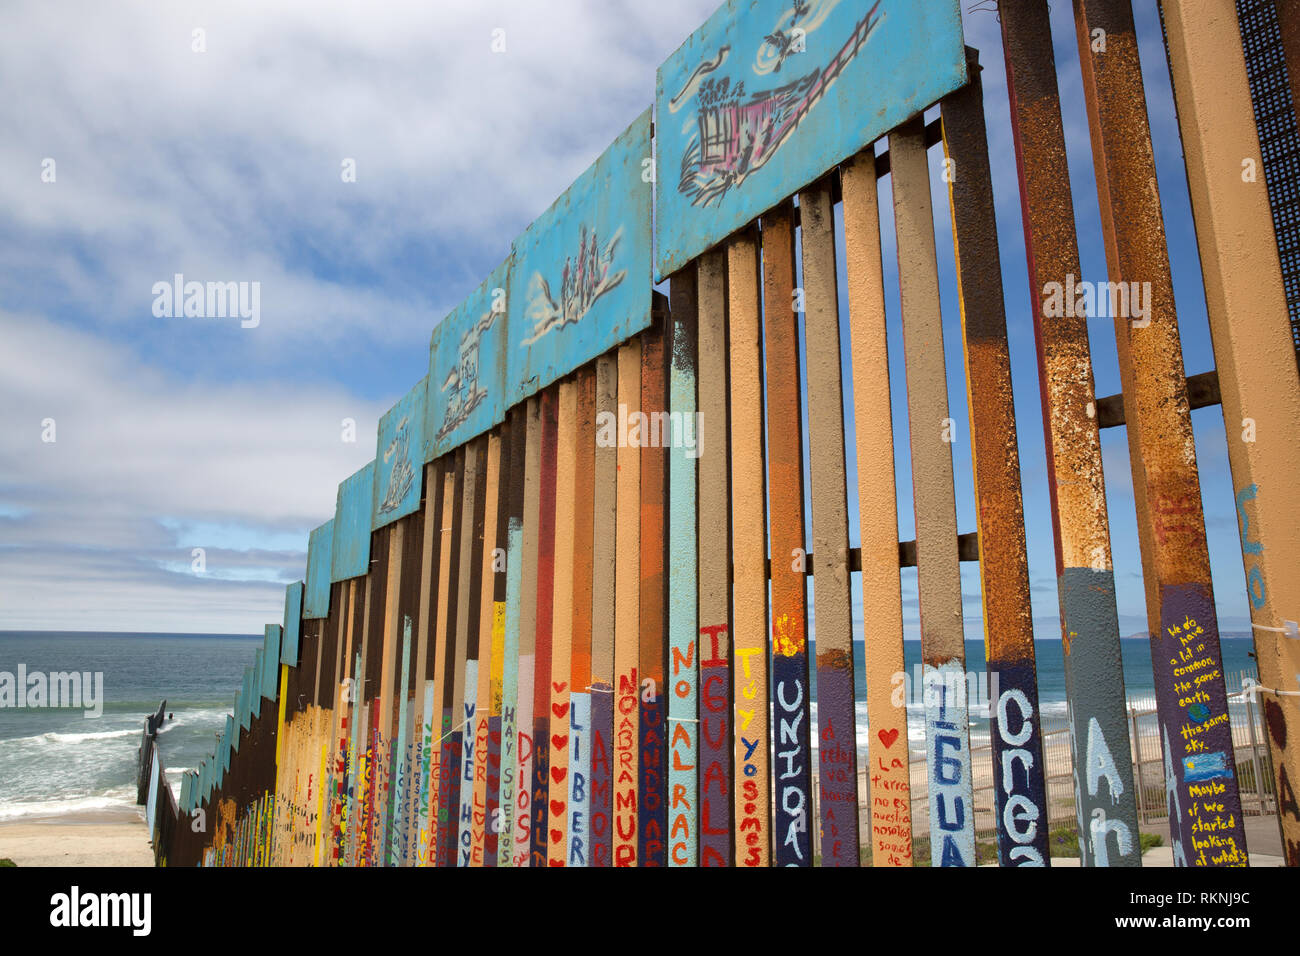 View from the Mexican side of Mexico-United States border fence where it meets the Pacific Ocean in Tijuana, Mexico on June 9, 2017. Photo by Bénédict - Stock Image